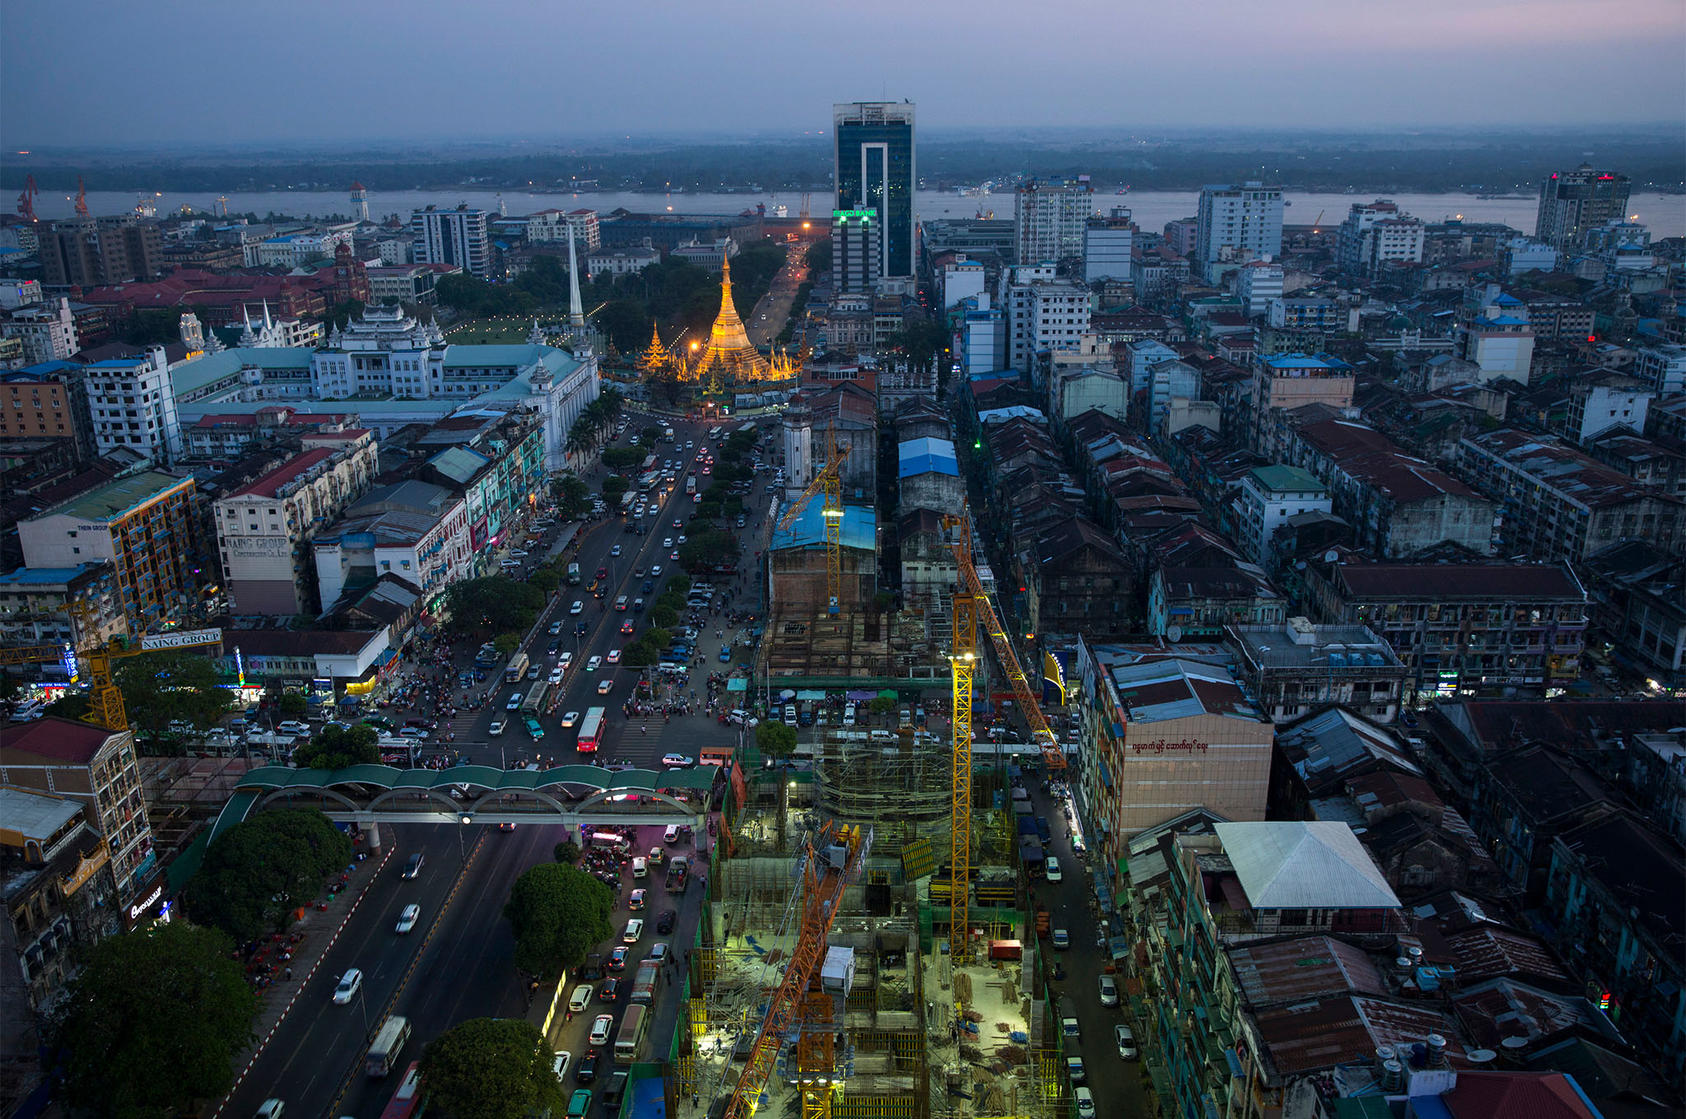 Yangon, the capital of Myanmar, April 1, 2015. (Adam Dean/The New York Times)